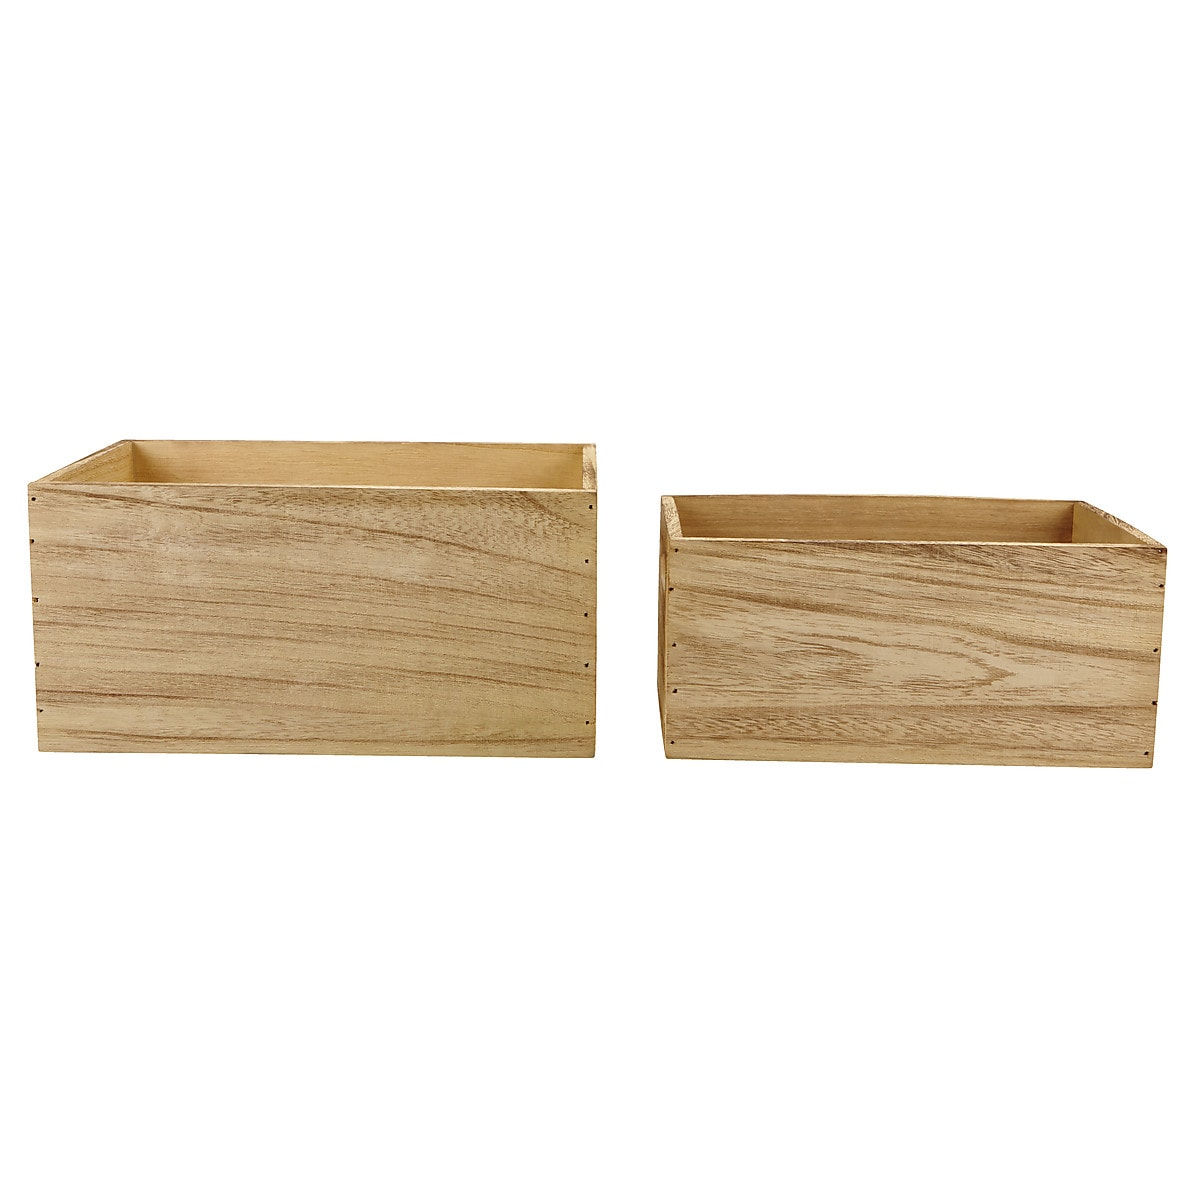 Set of 2 Wooden Crates